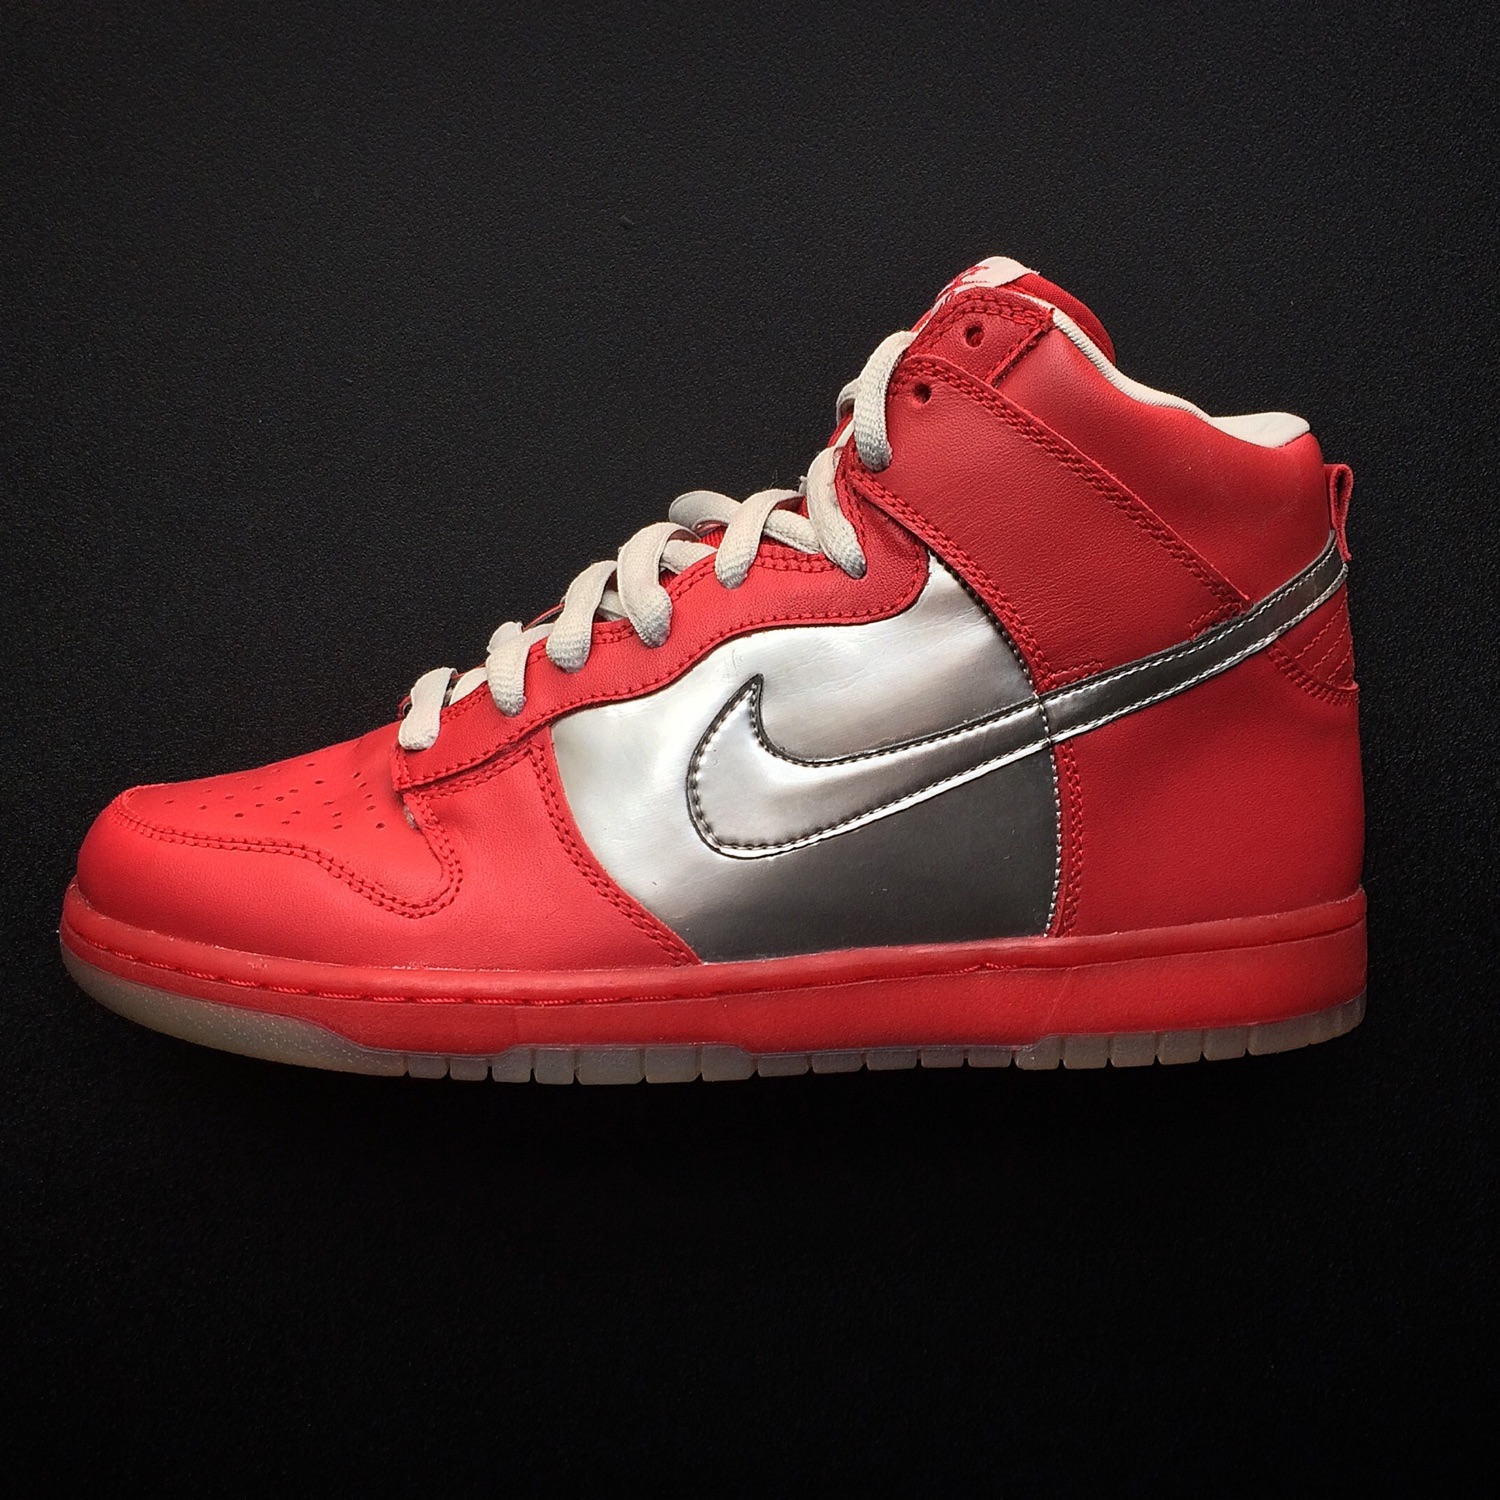 reputable site 34c9a 57ea9 Nike Dunk High Pro Sb